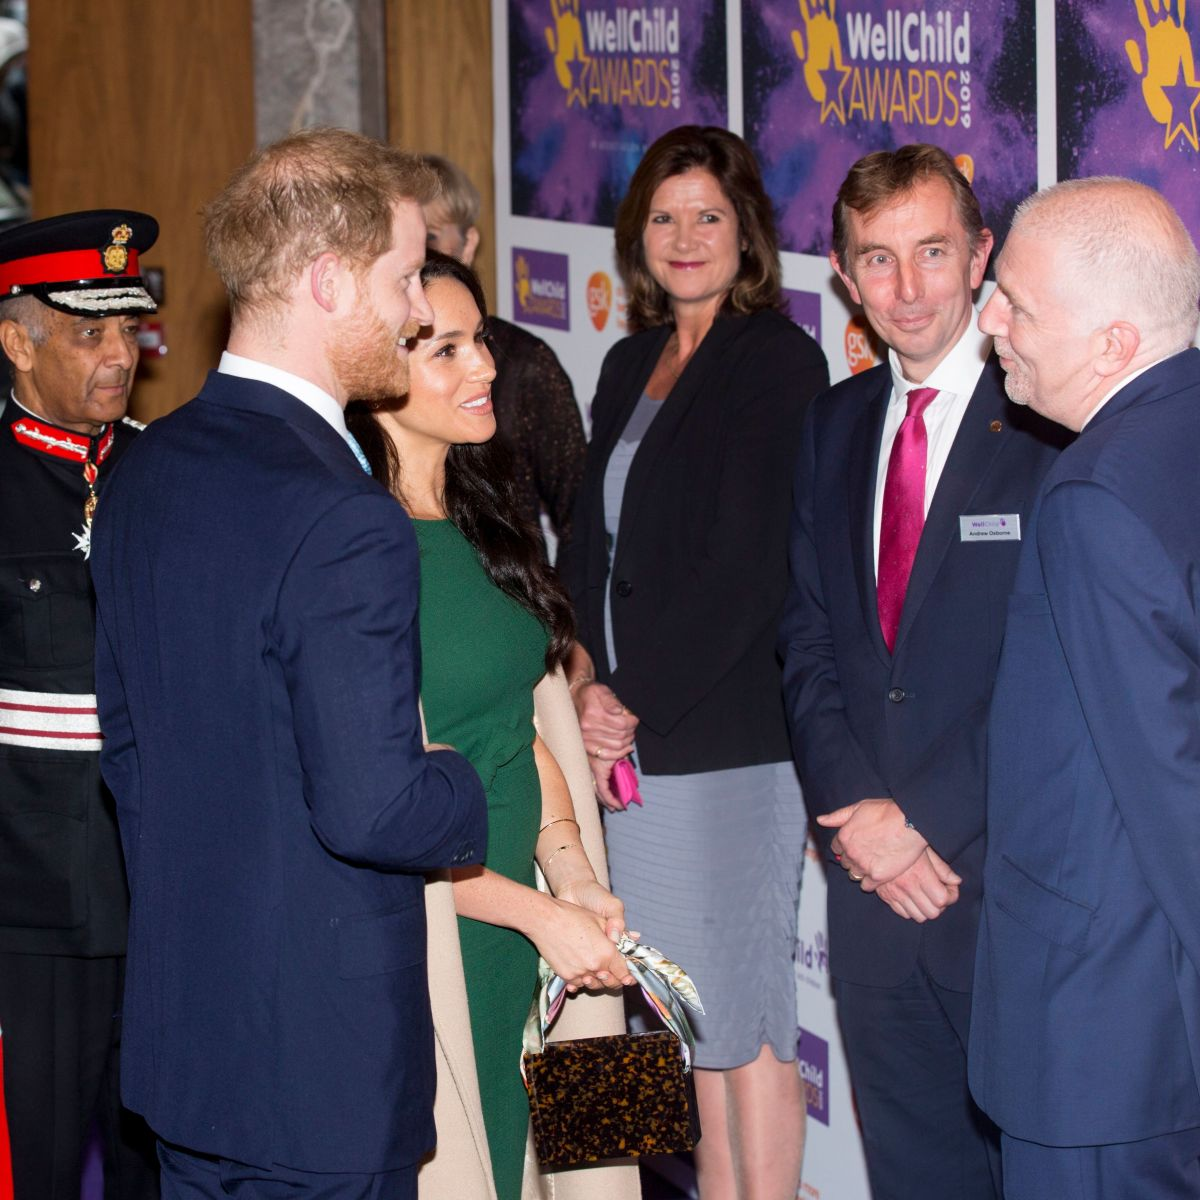 Duchess Meghan and Prince Harry Enjoy Date Night at the WellChild Awards in London